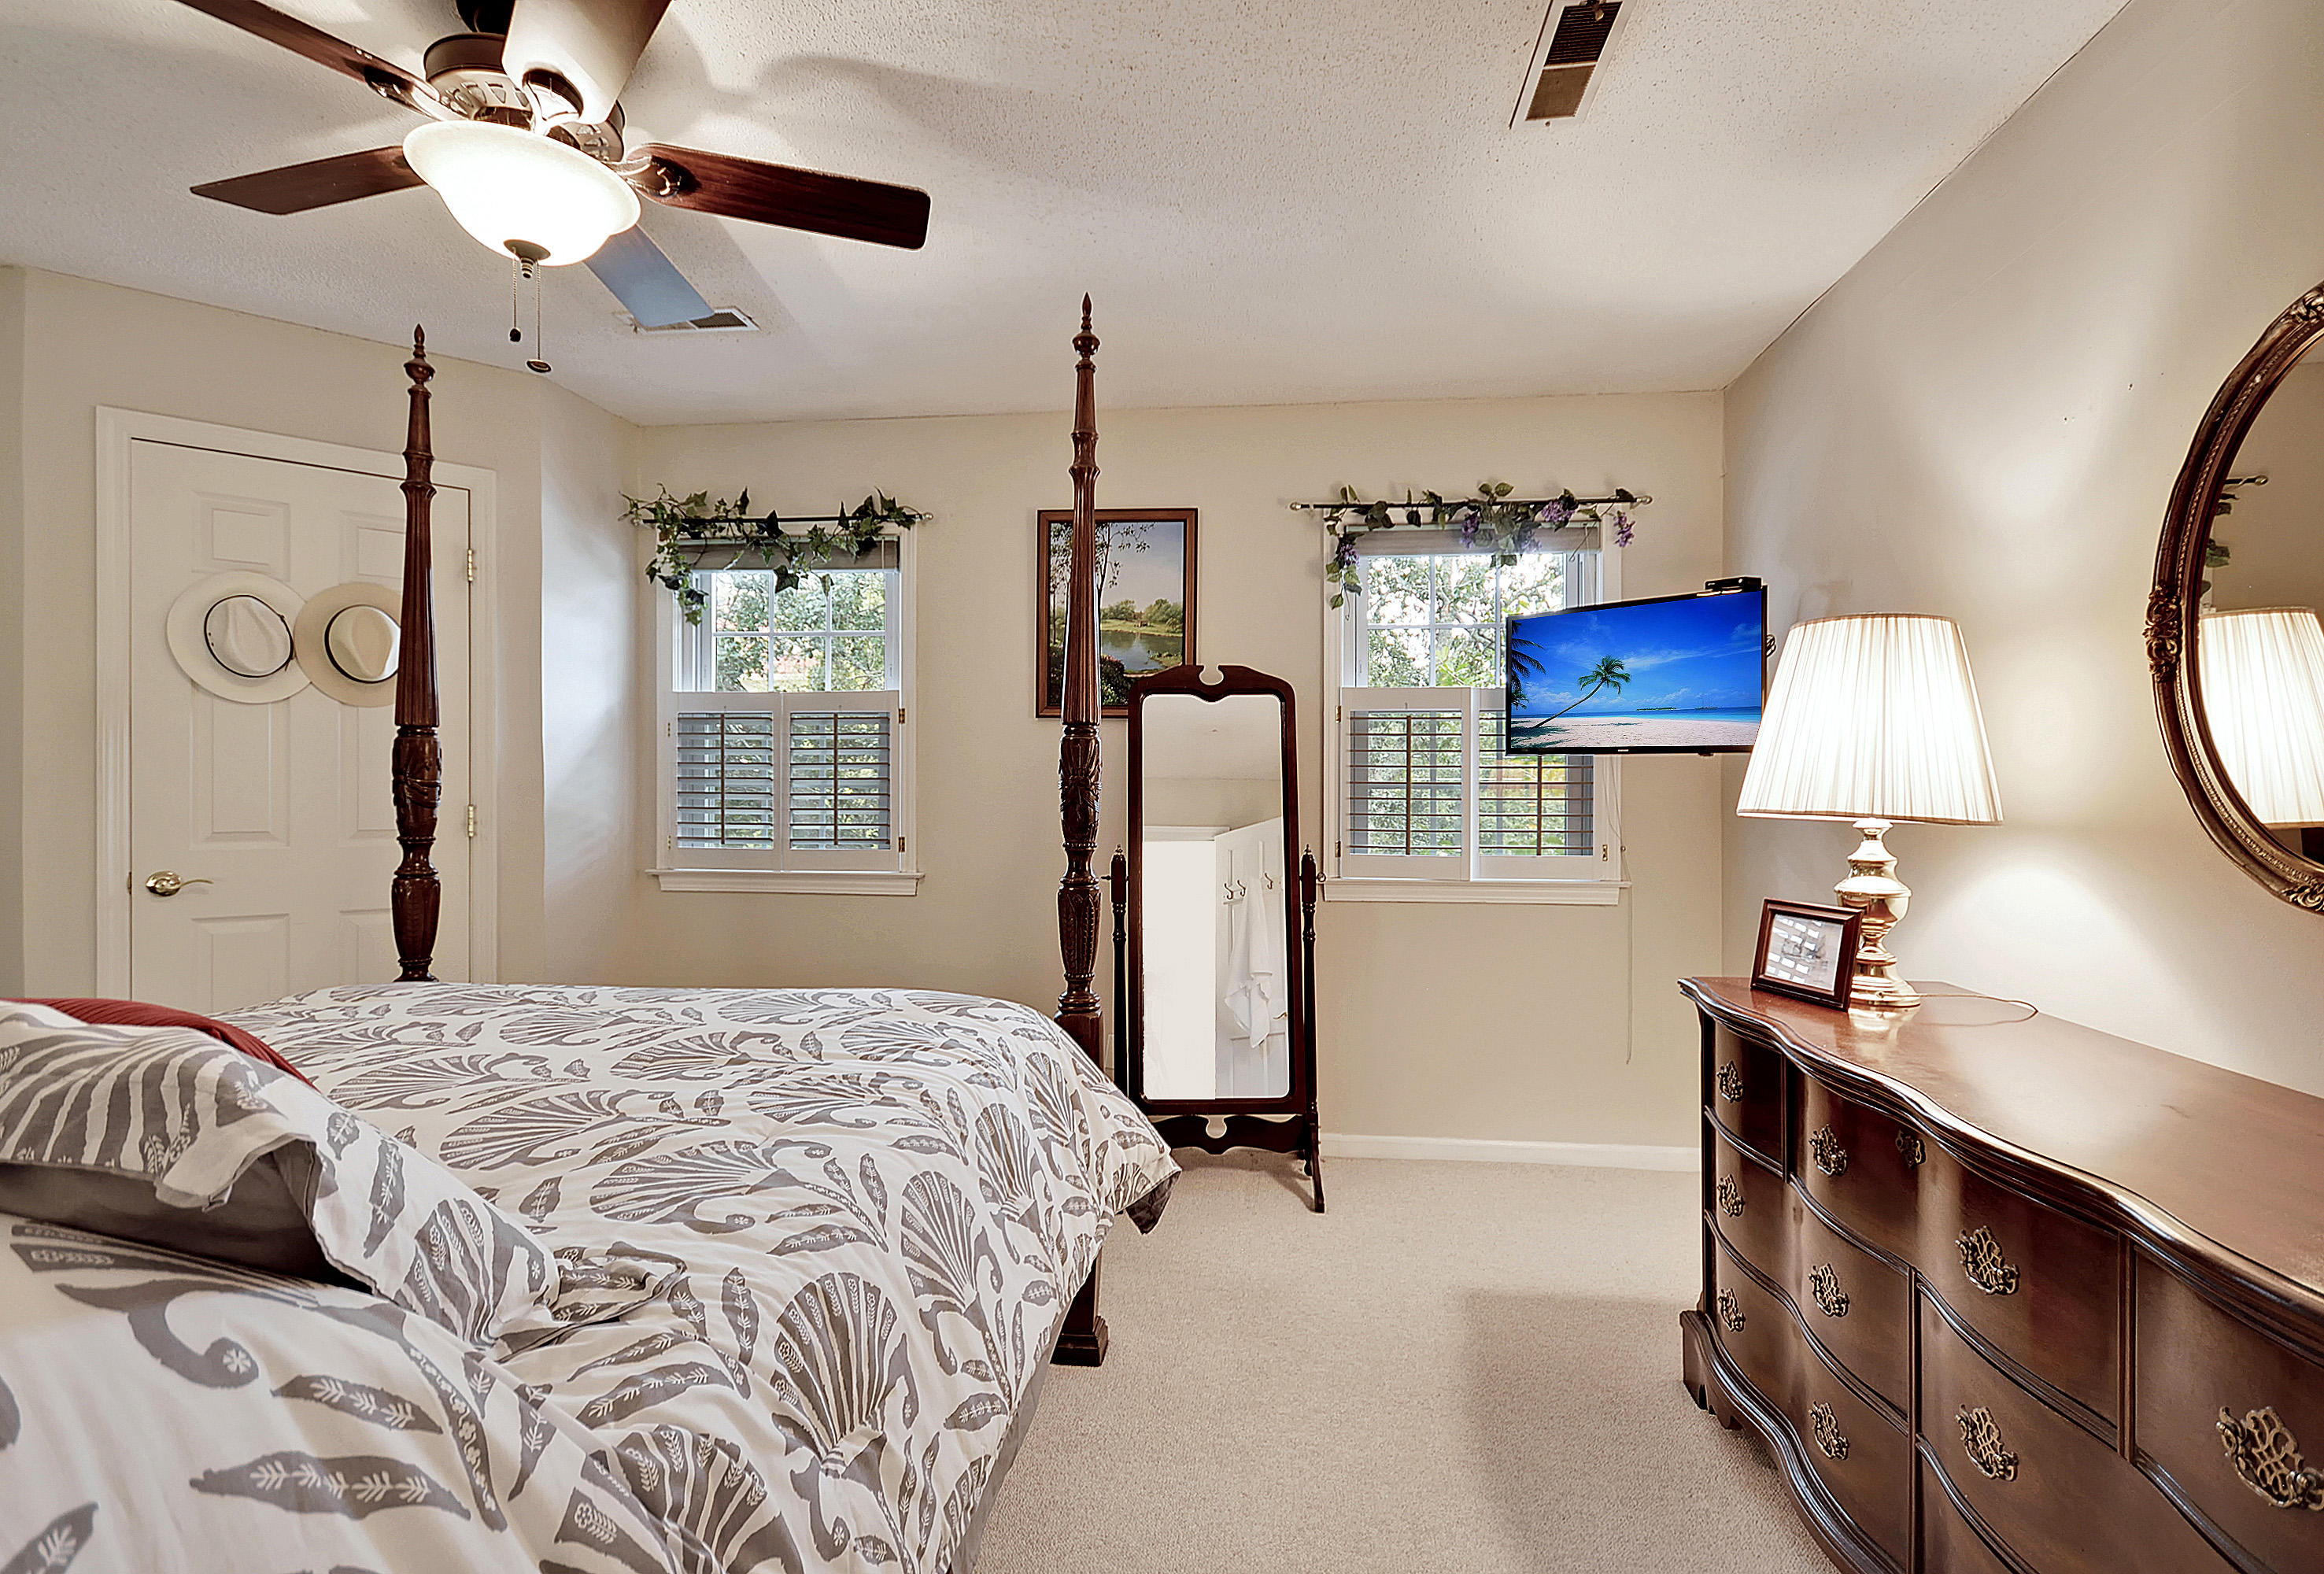 South of Broad Homes For Sale - 0 Rutledge, Charleston, SC - 22